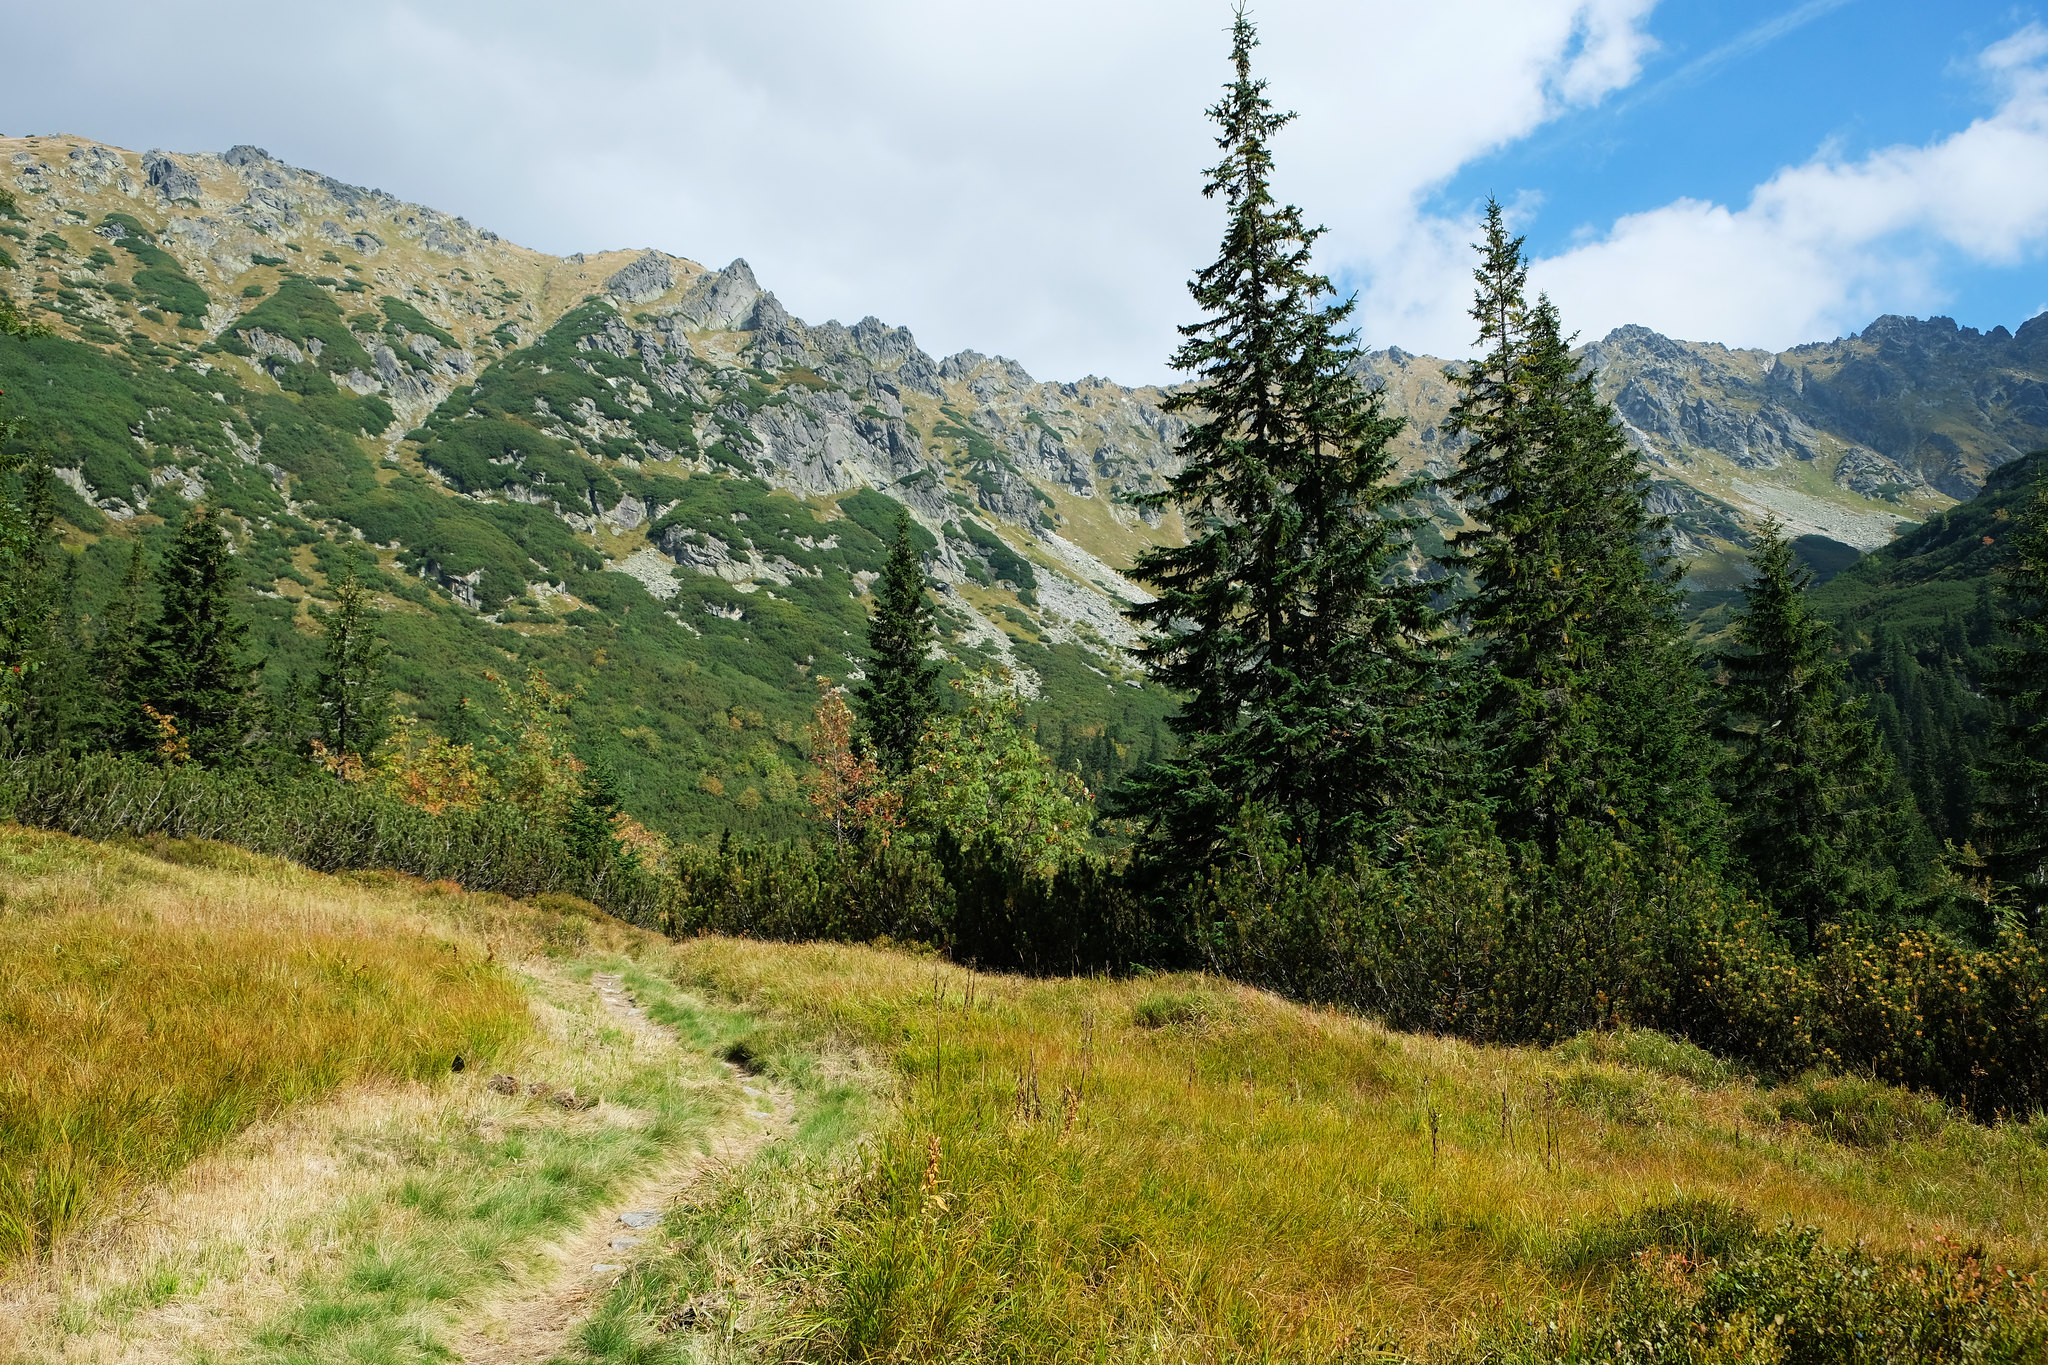 Kôprová Valley, High Tatras